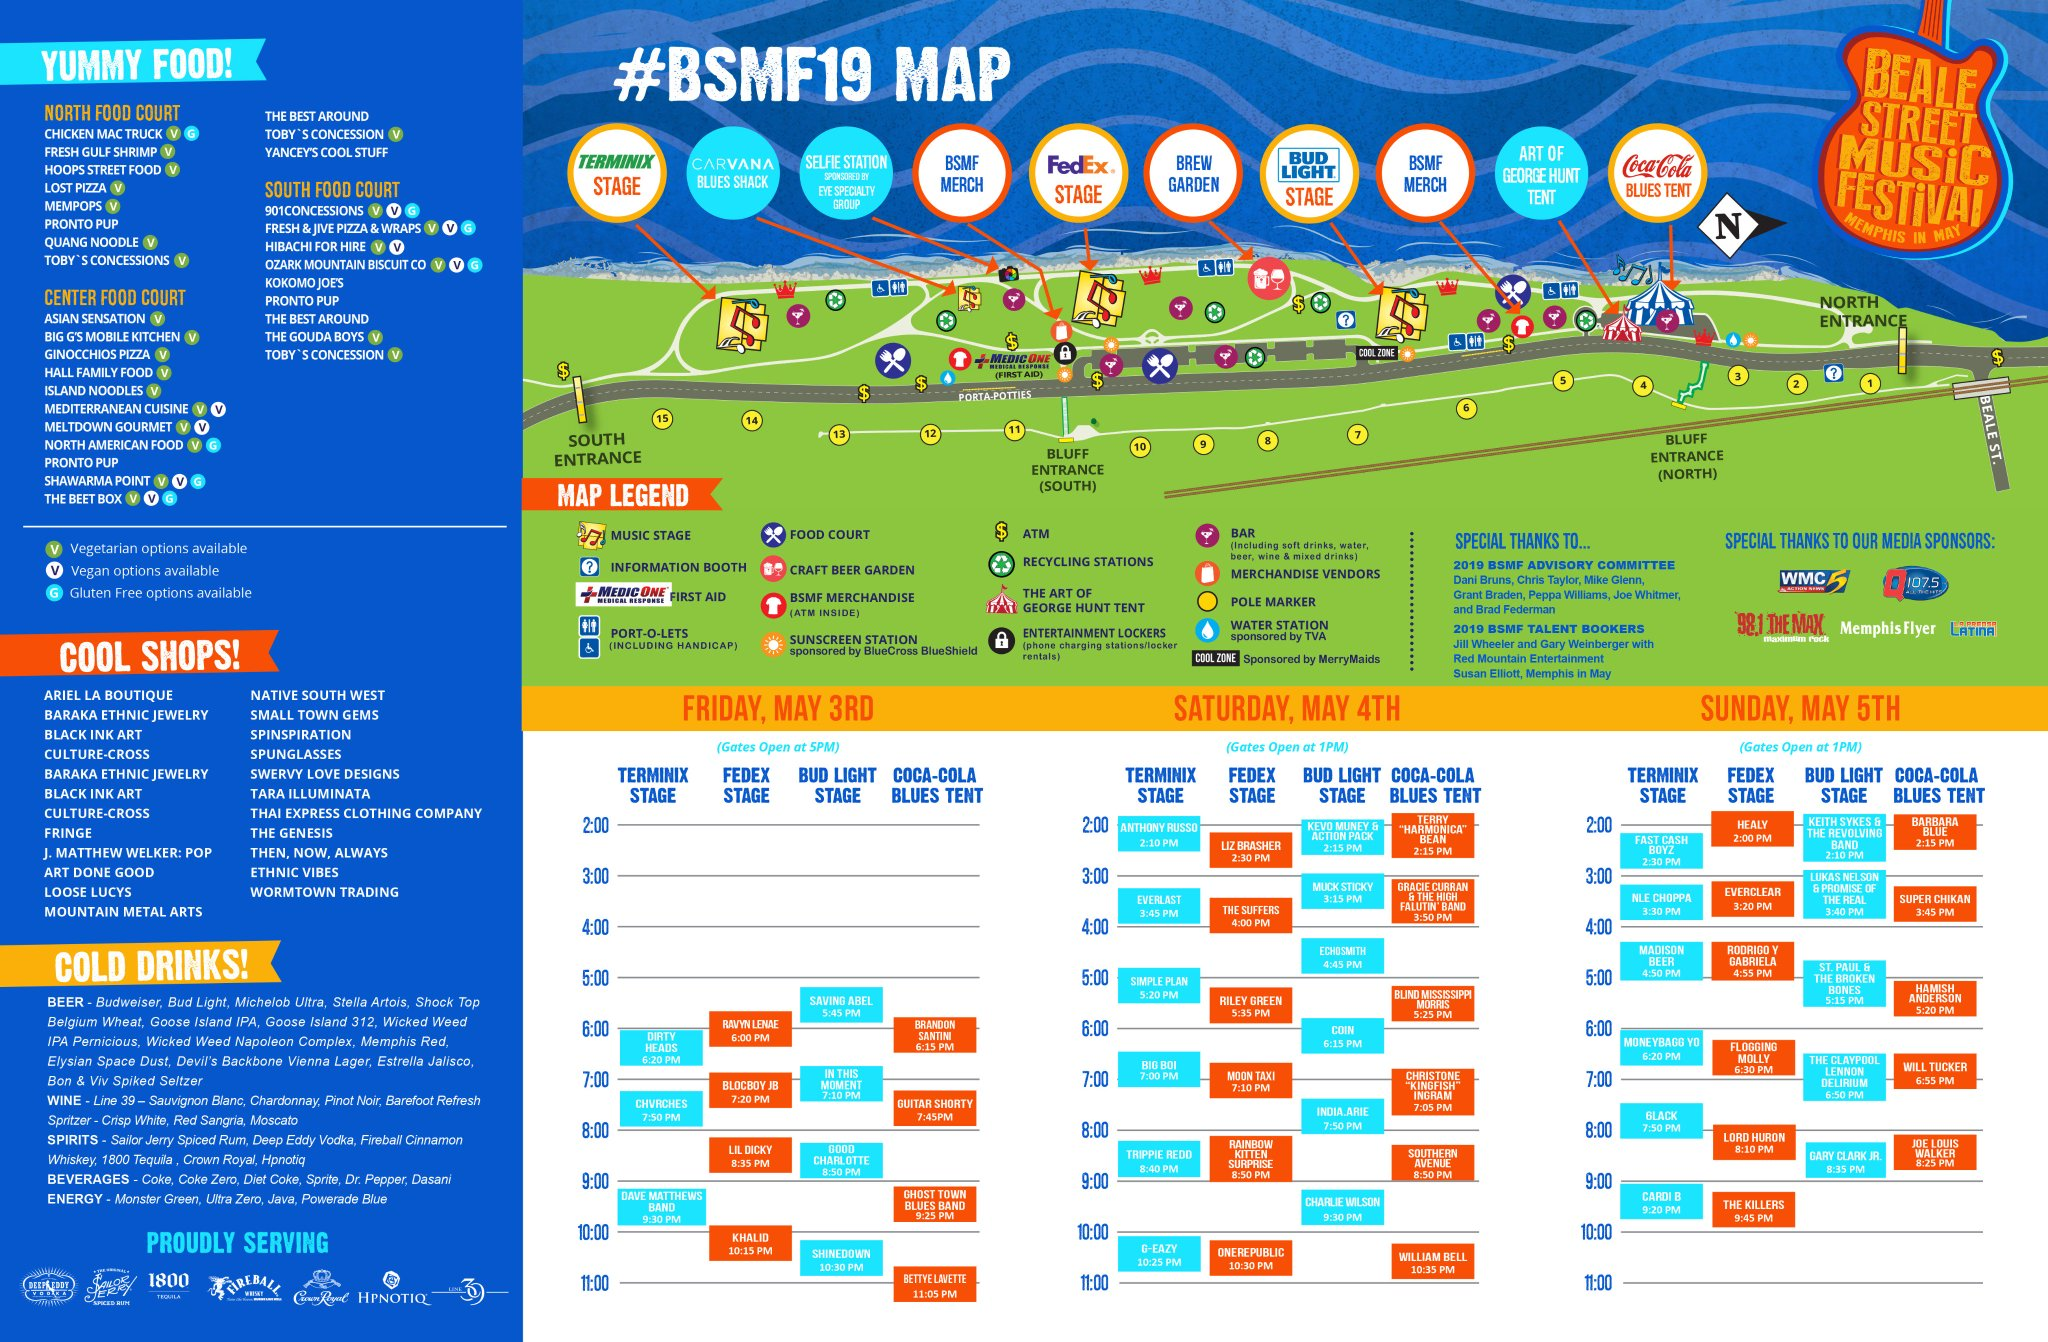 Beale Street Music Festival 2019 venue map